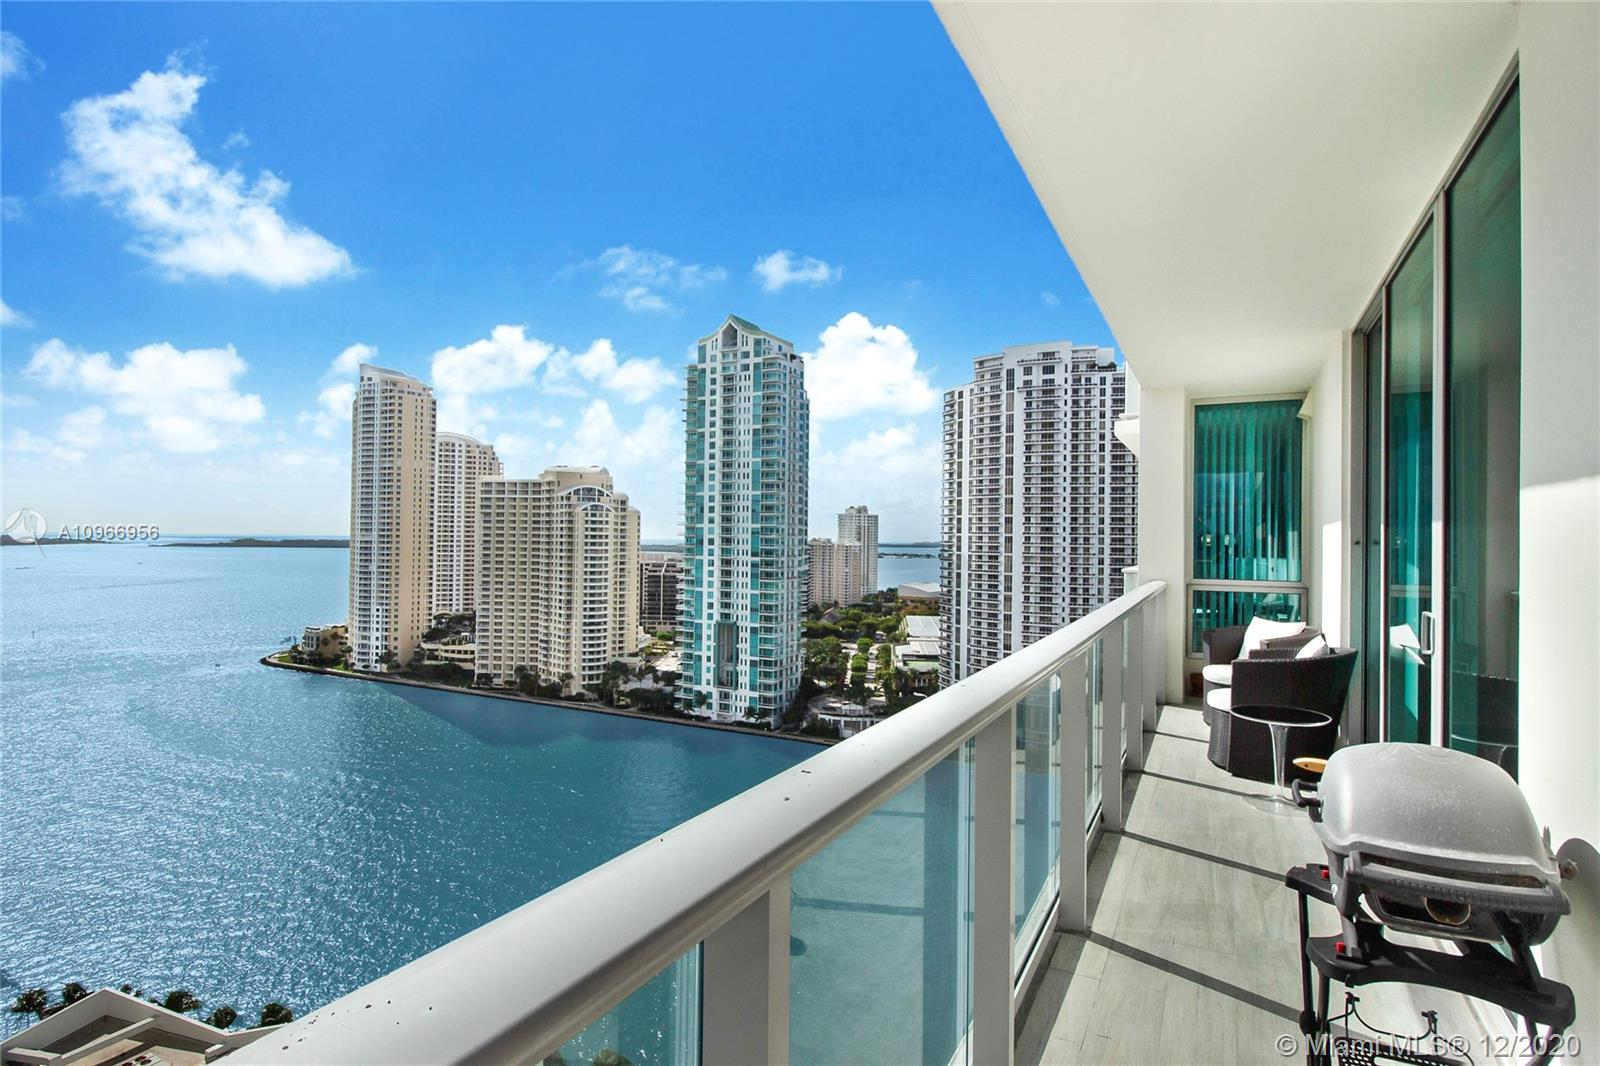 Spectacular Panoramic City and Ocean Views, 2 Bedom Coner Unit! Confortable open living space with 10' ceilings; Completely Updated,   European Kitchen, Incredible wood flooring throughout. Over Extended  balconies to enjoy sunrises over the Atlantic Ocean and sunsets over the city of Miami.Met 1 ofer Full ammenities  pool, spa, gym, resident's lounge, kid's playroom, theater, concierge, valet, security